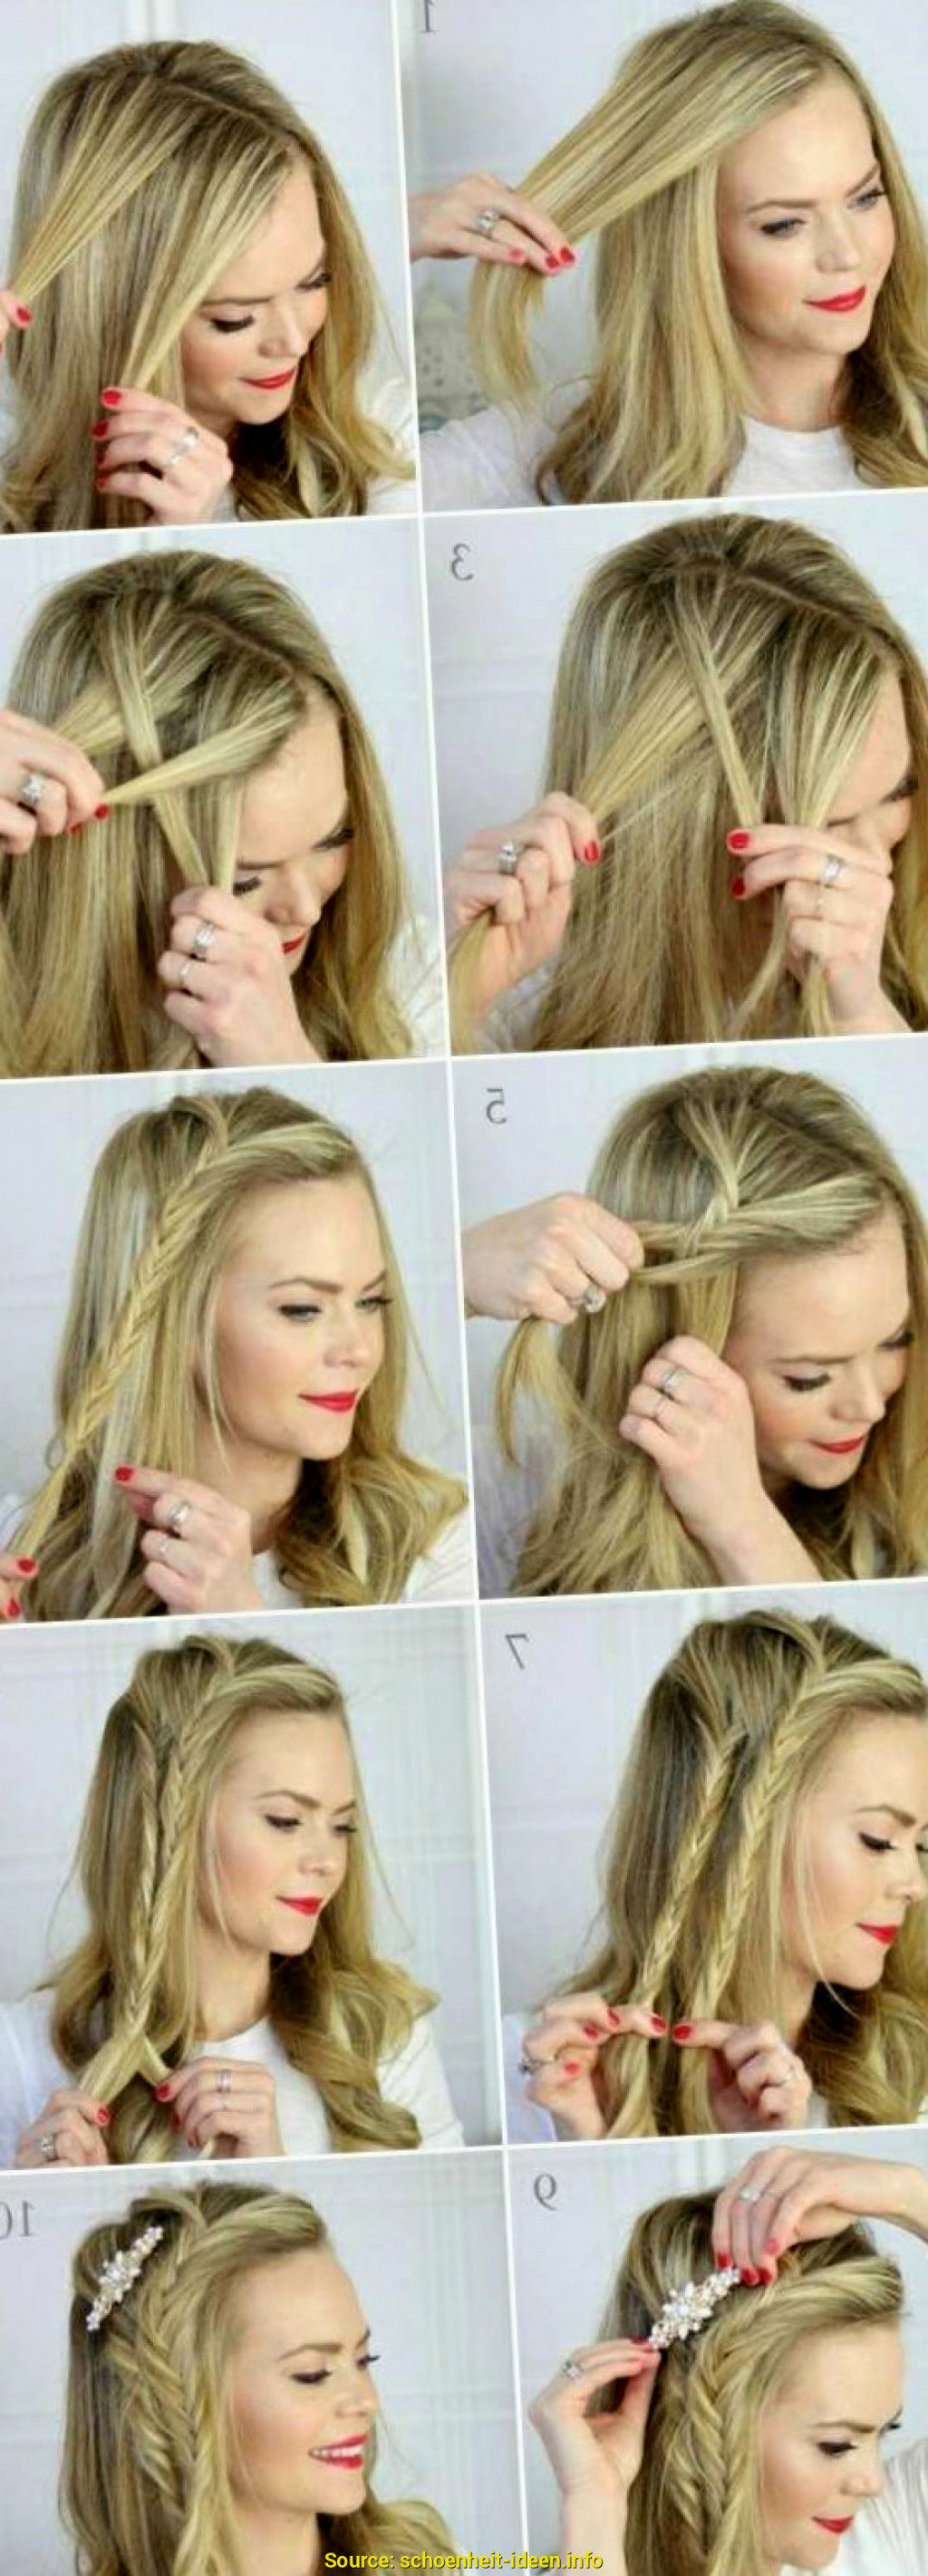 Cute Simple Oktoberfest Hairstyles For Making Your Own Collection - Hair Style 2020